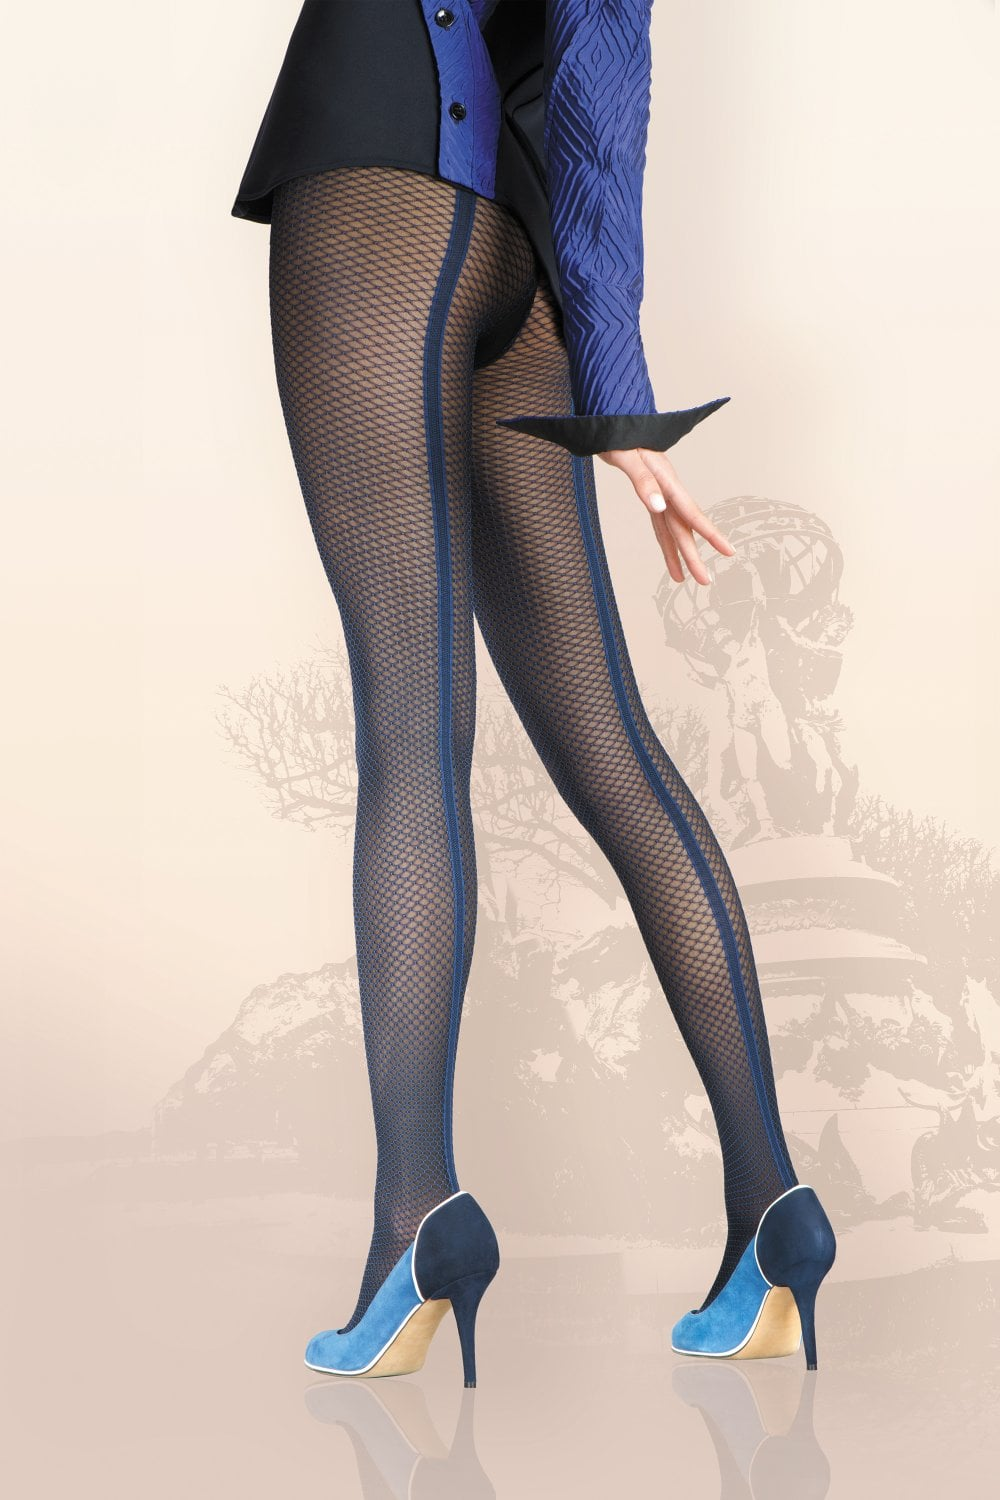 00a97d65e Gerbe Sensualite Seamed Fishnet Tights